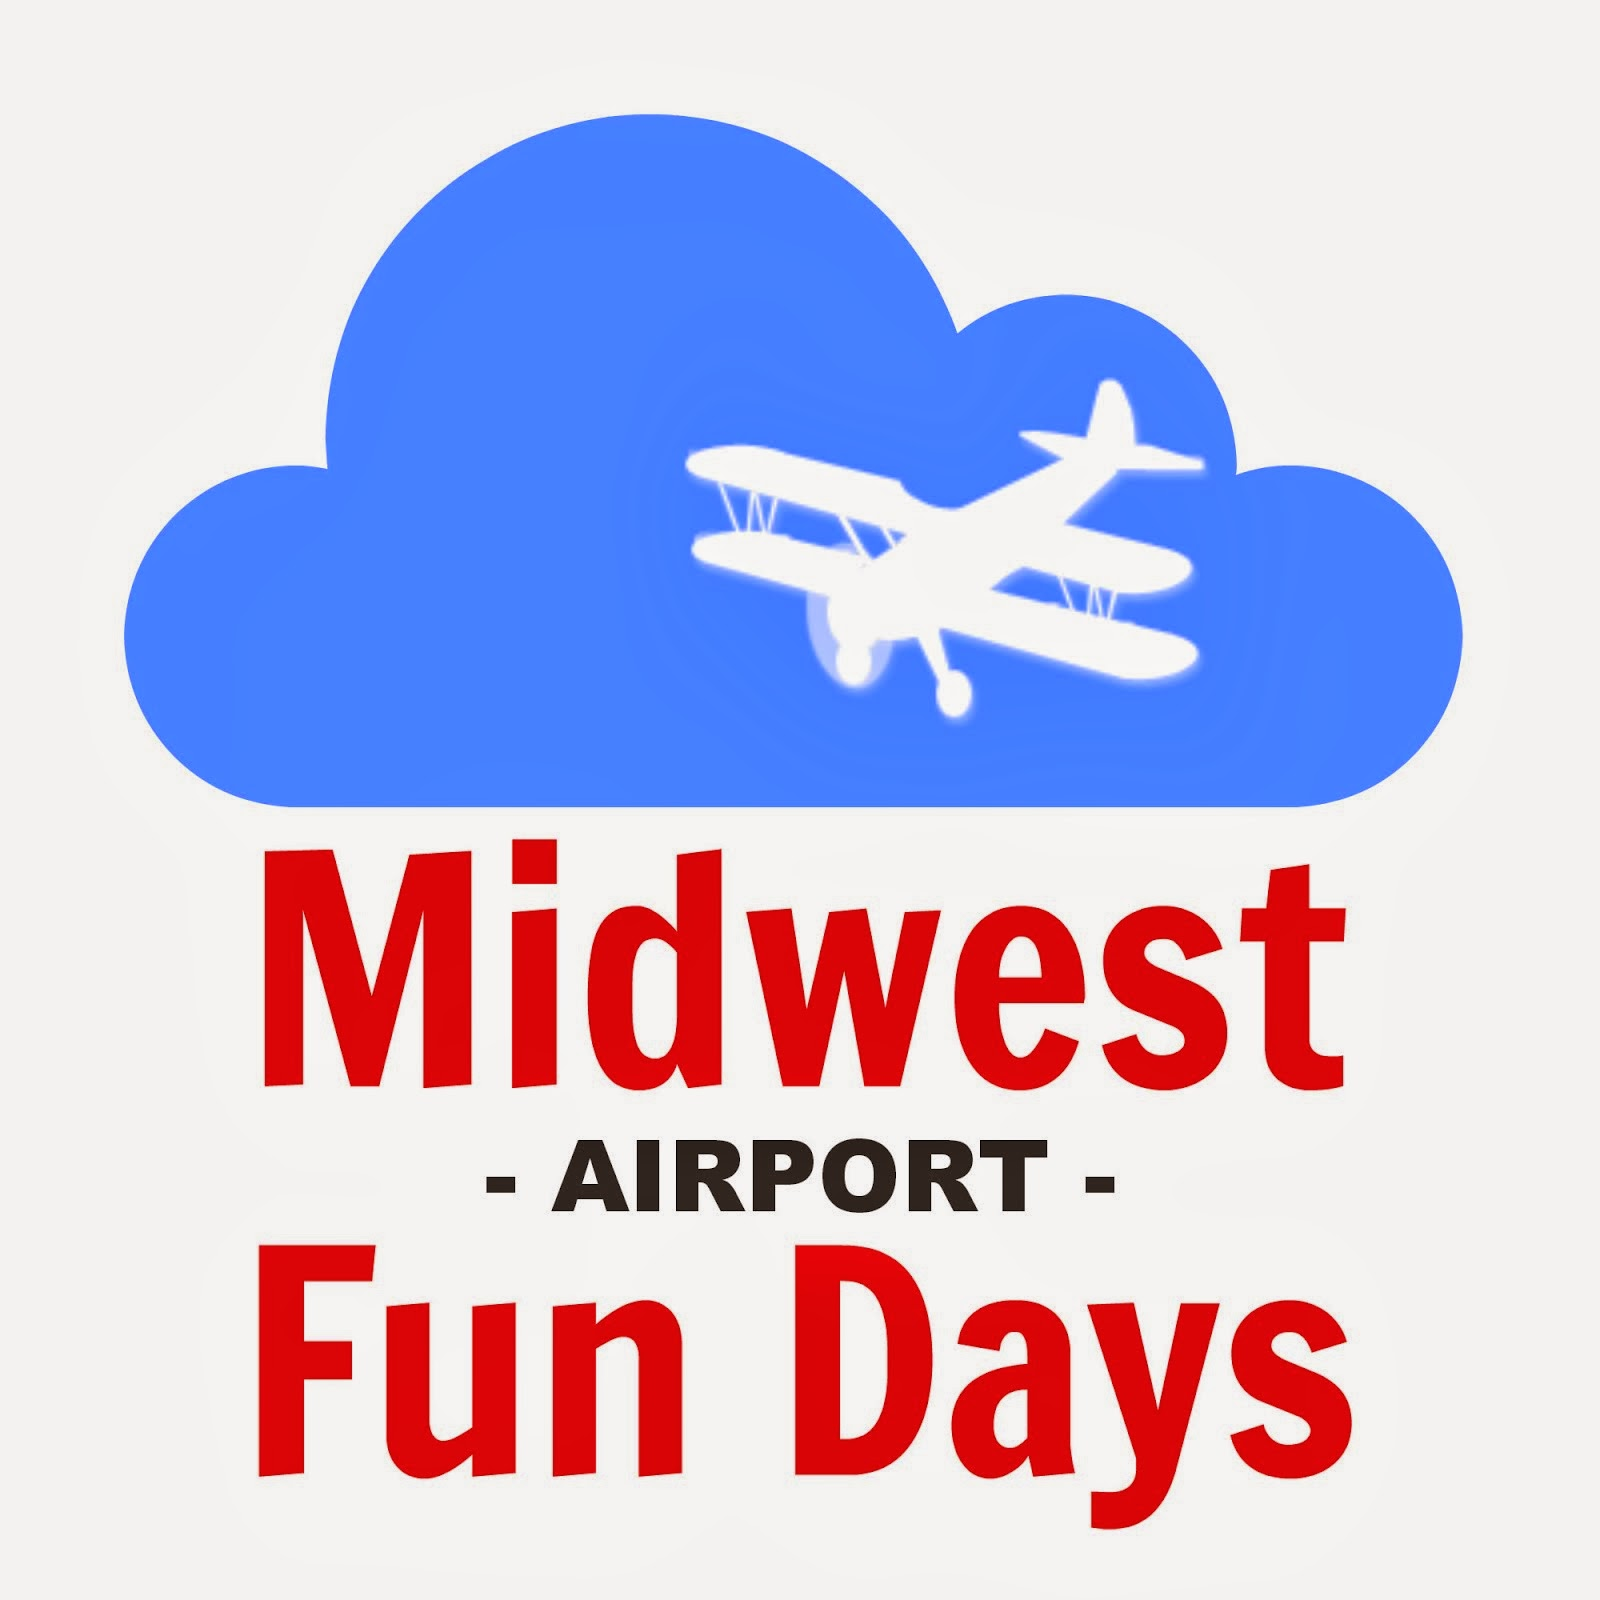 Midwest Airport Fun Days Take Off June 7-8!